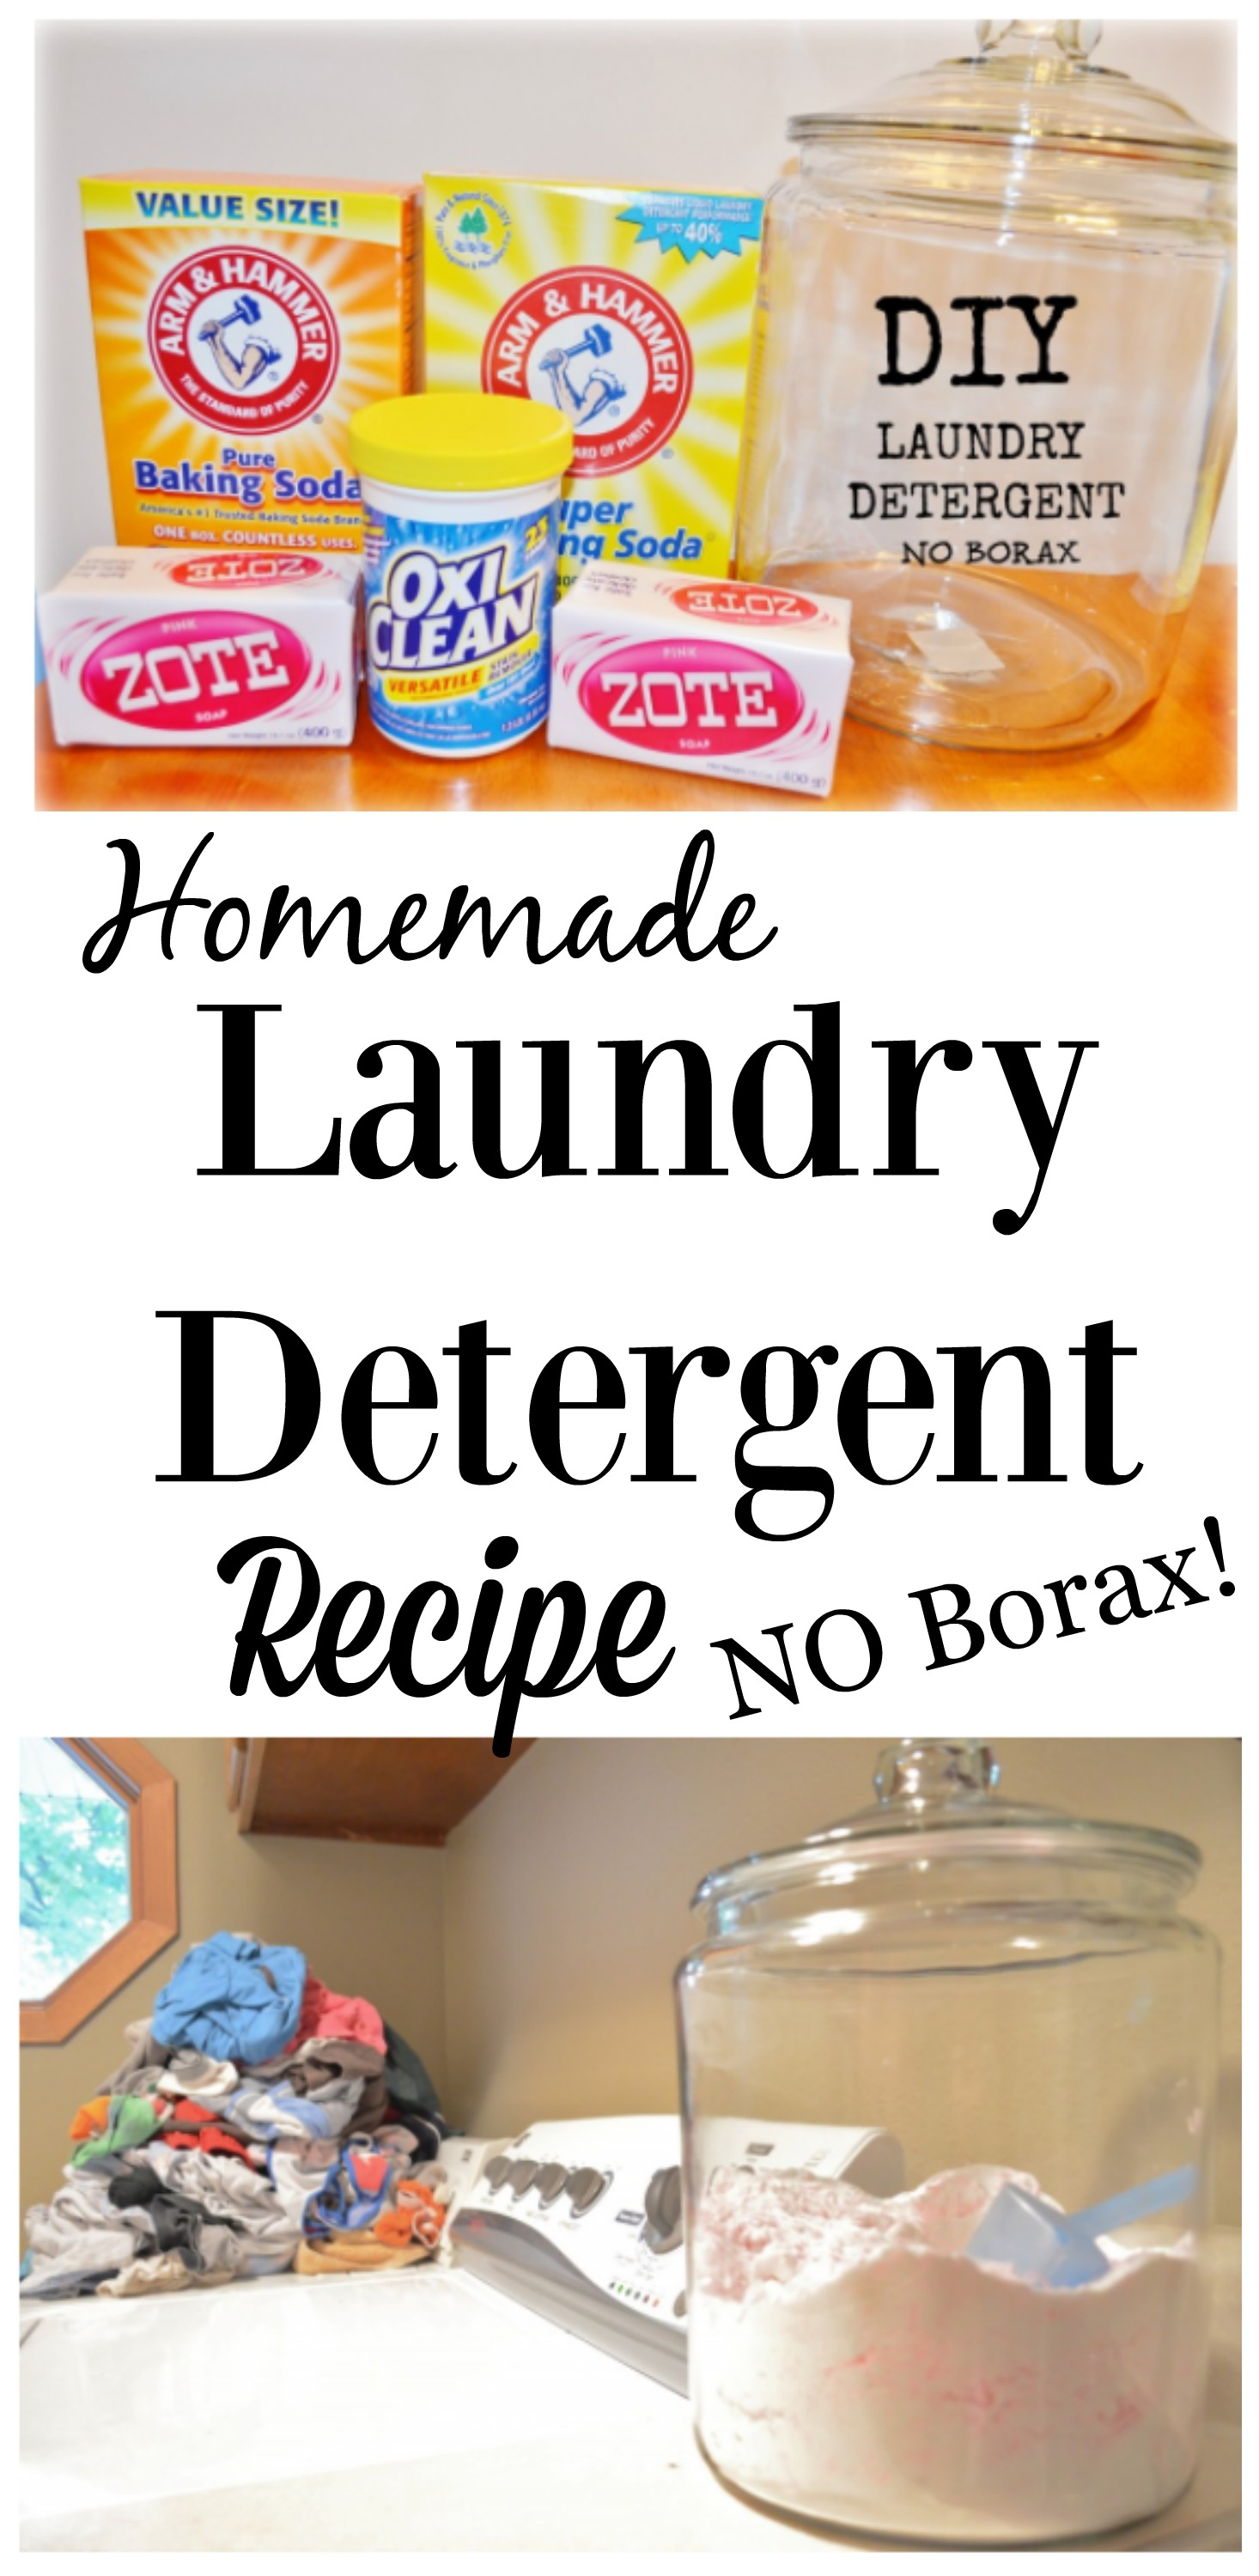 DIY Homemade Laundry Detergent Recipe